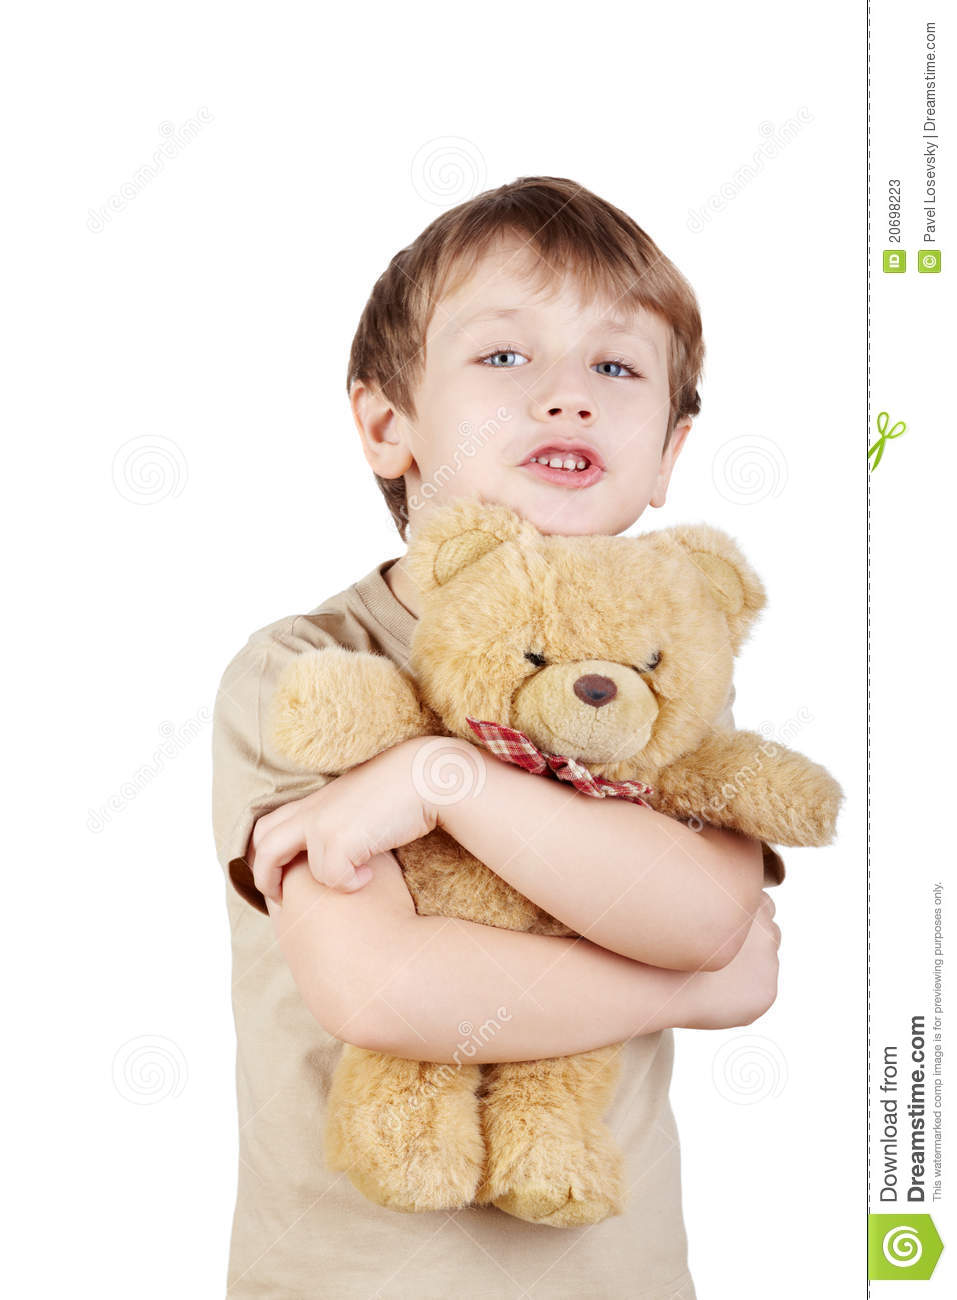 Boy Hugs Bear-toy And Says Something. Stock Photos - Image